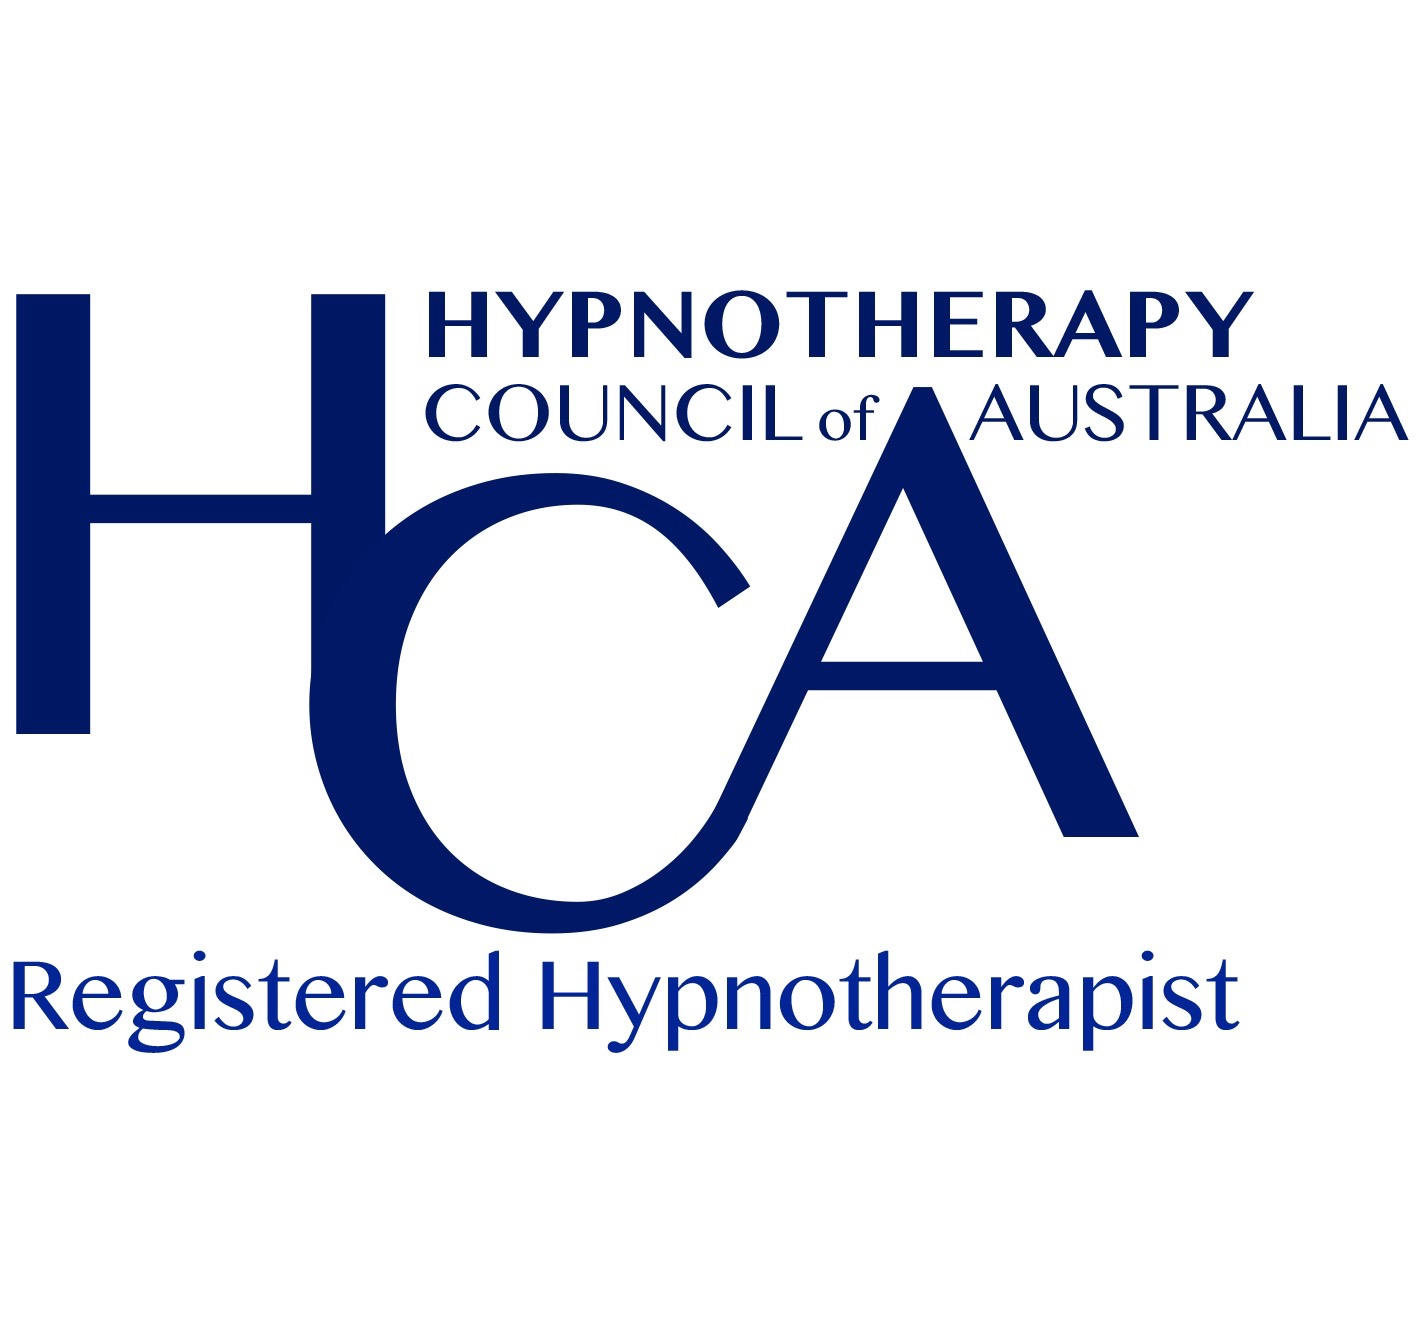 Hypnotherapy Council of Australia Registered Hypnotherapist